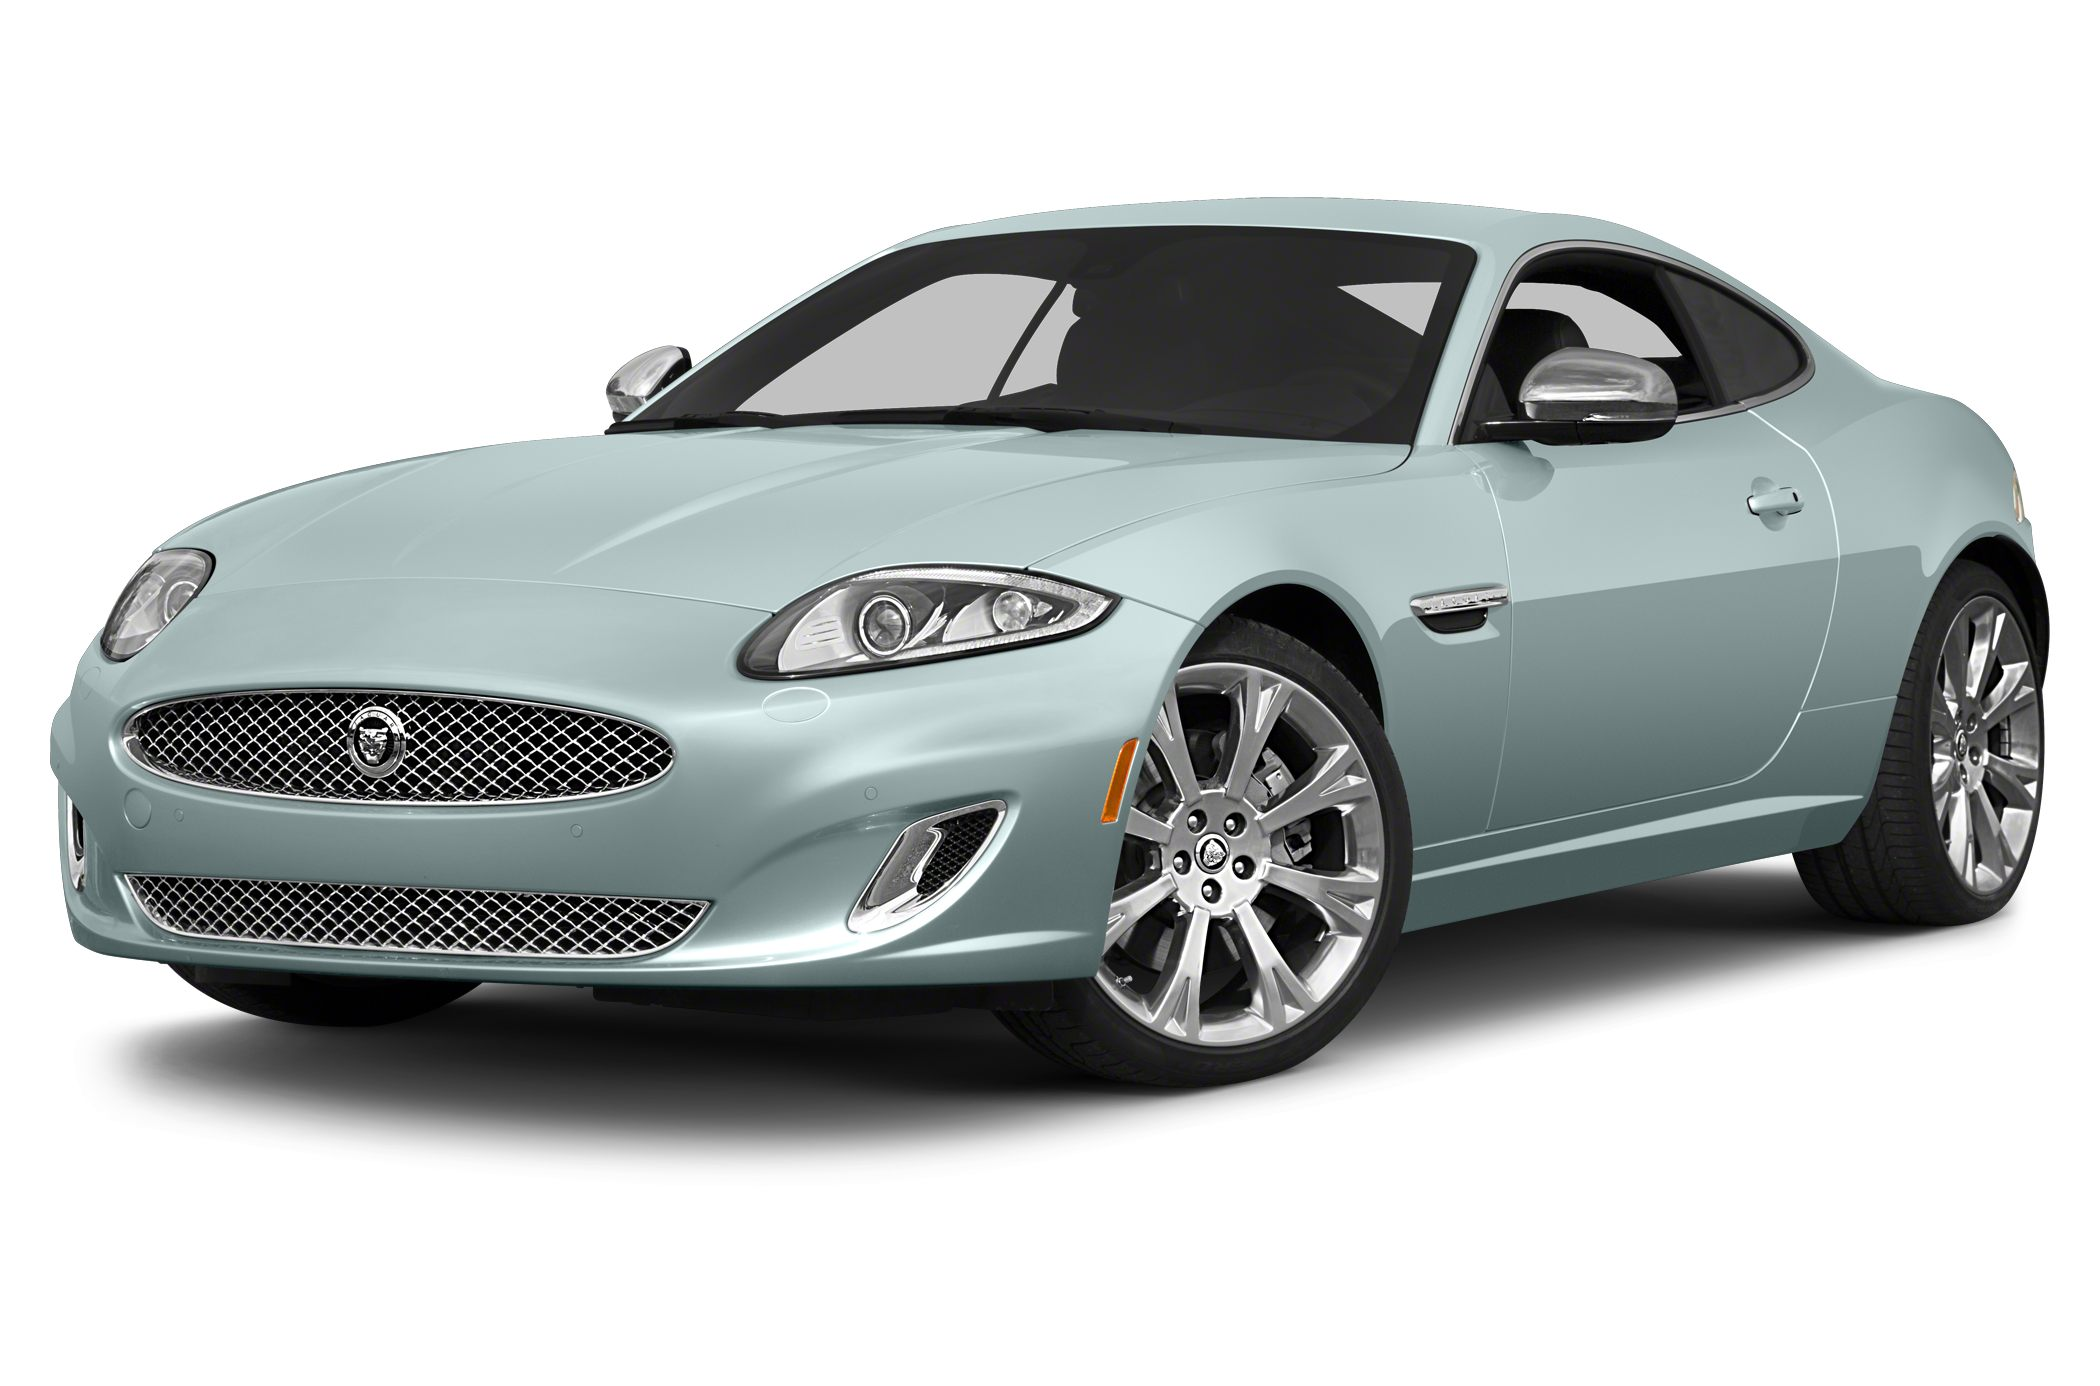 2012 Jaguar XK